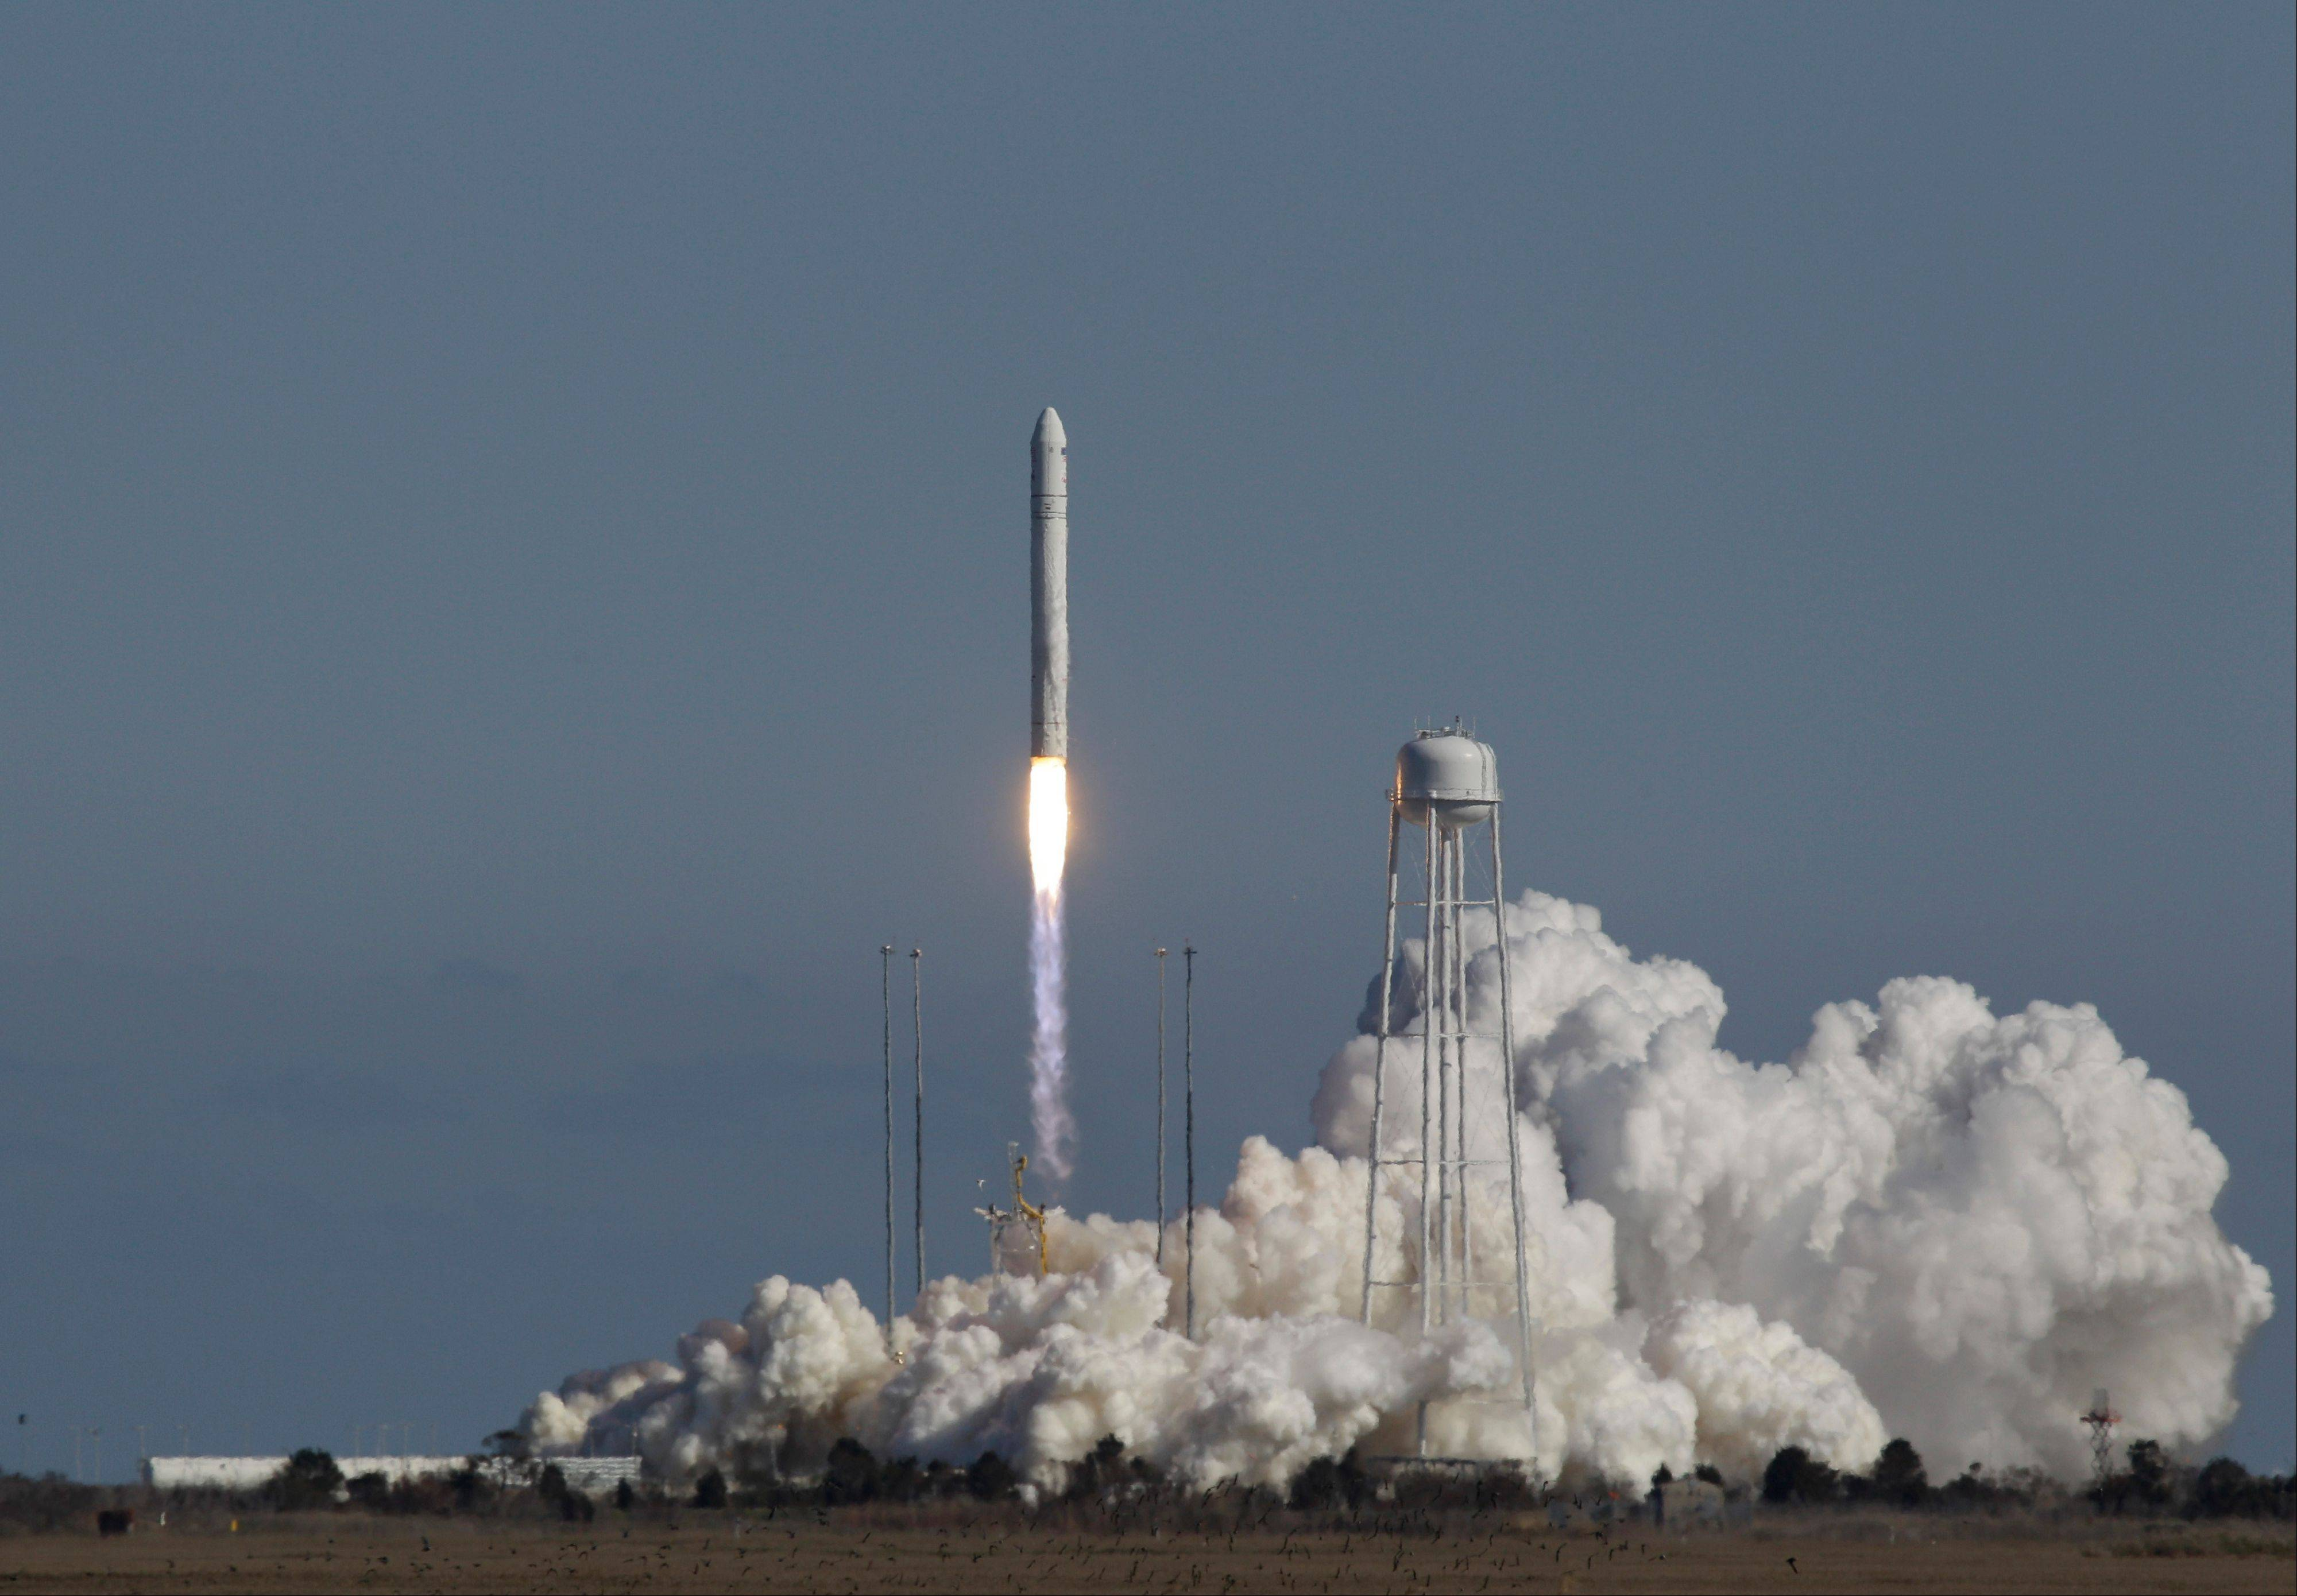 Orbital Sciences Corp.�s Antares rocket lifts off from the launchpad Sunday at the NASA facility on Wallops Island Va. The rocket will eventually deliver supplies to the International Space Station.